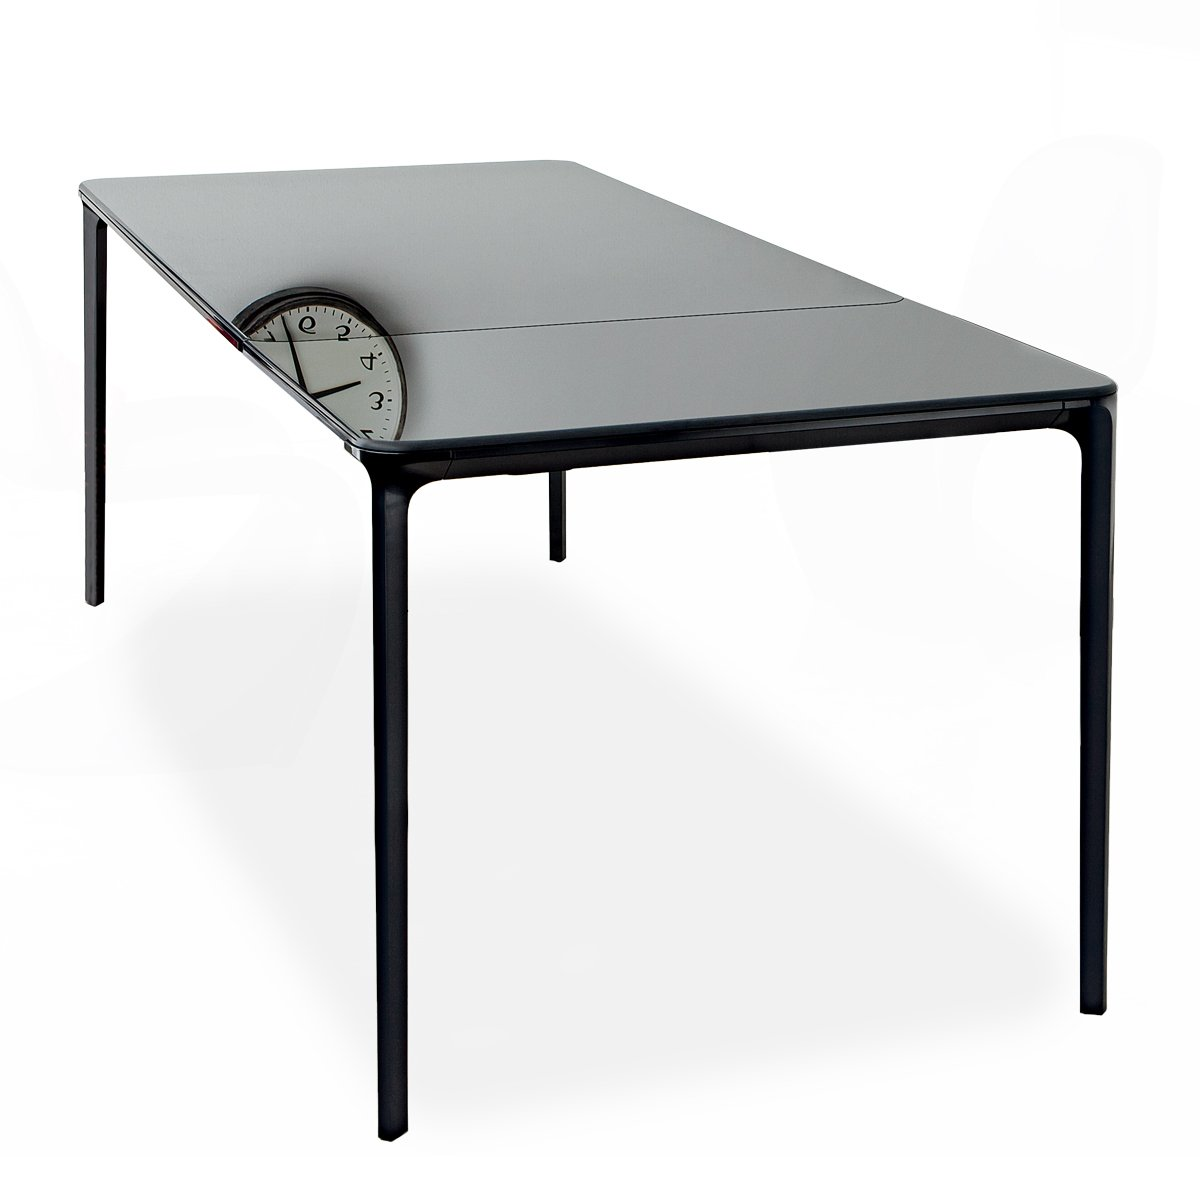 Table verre noir extensible maison design for Table verre extensible